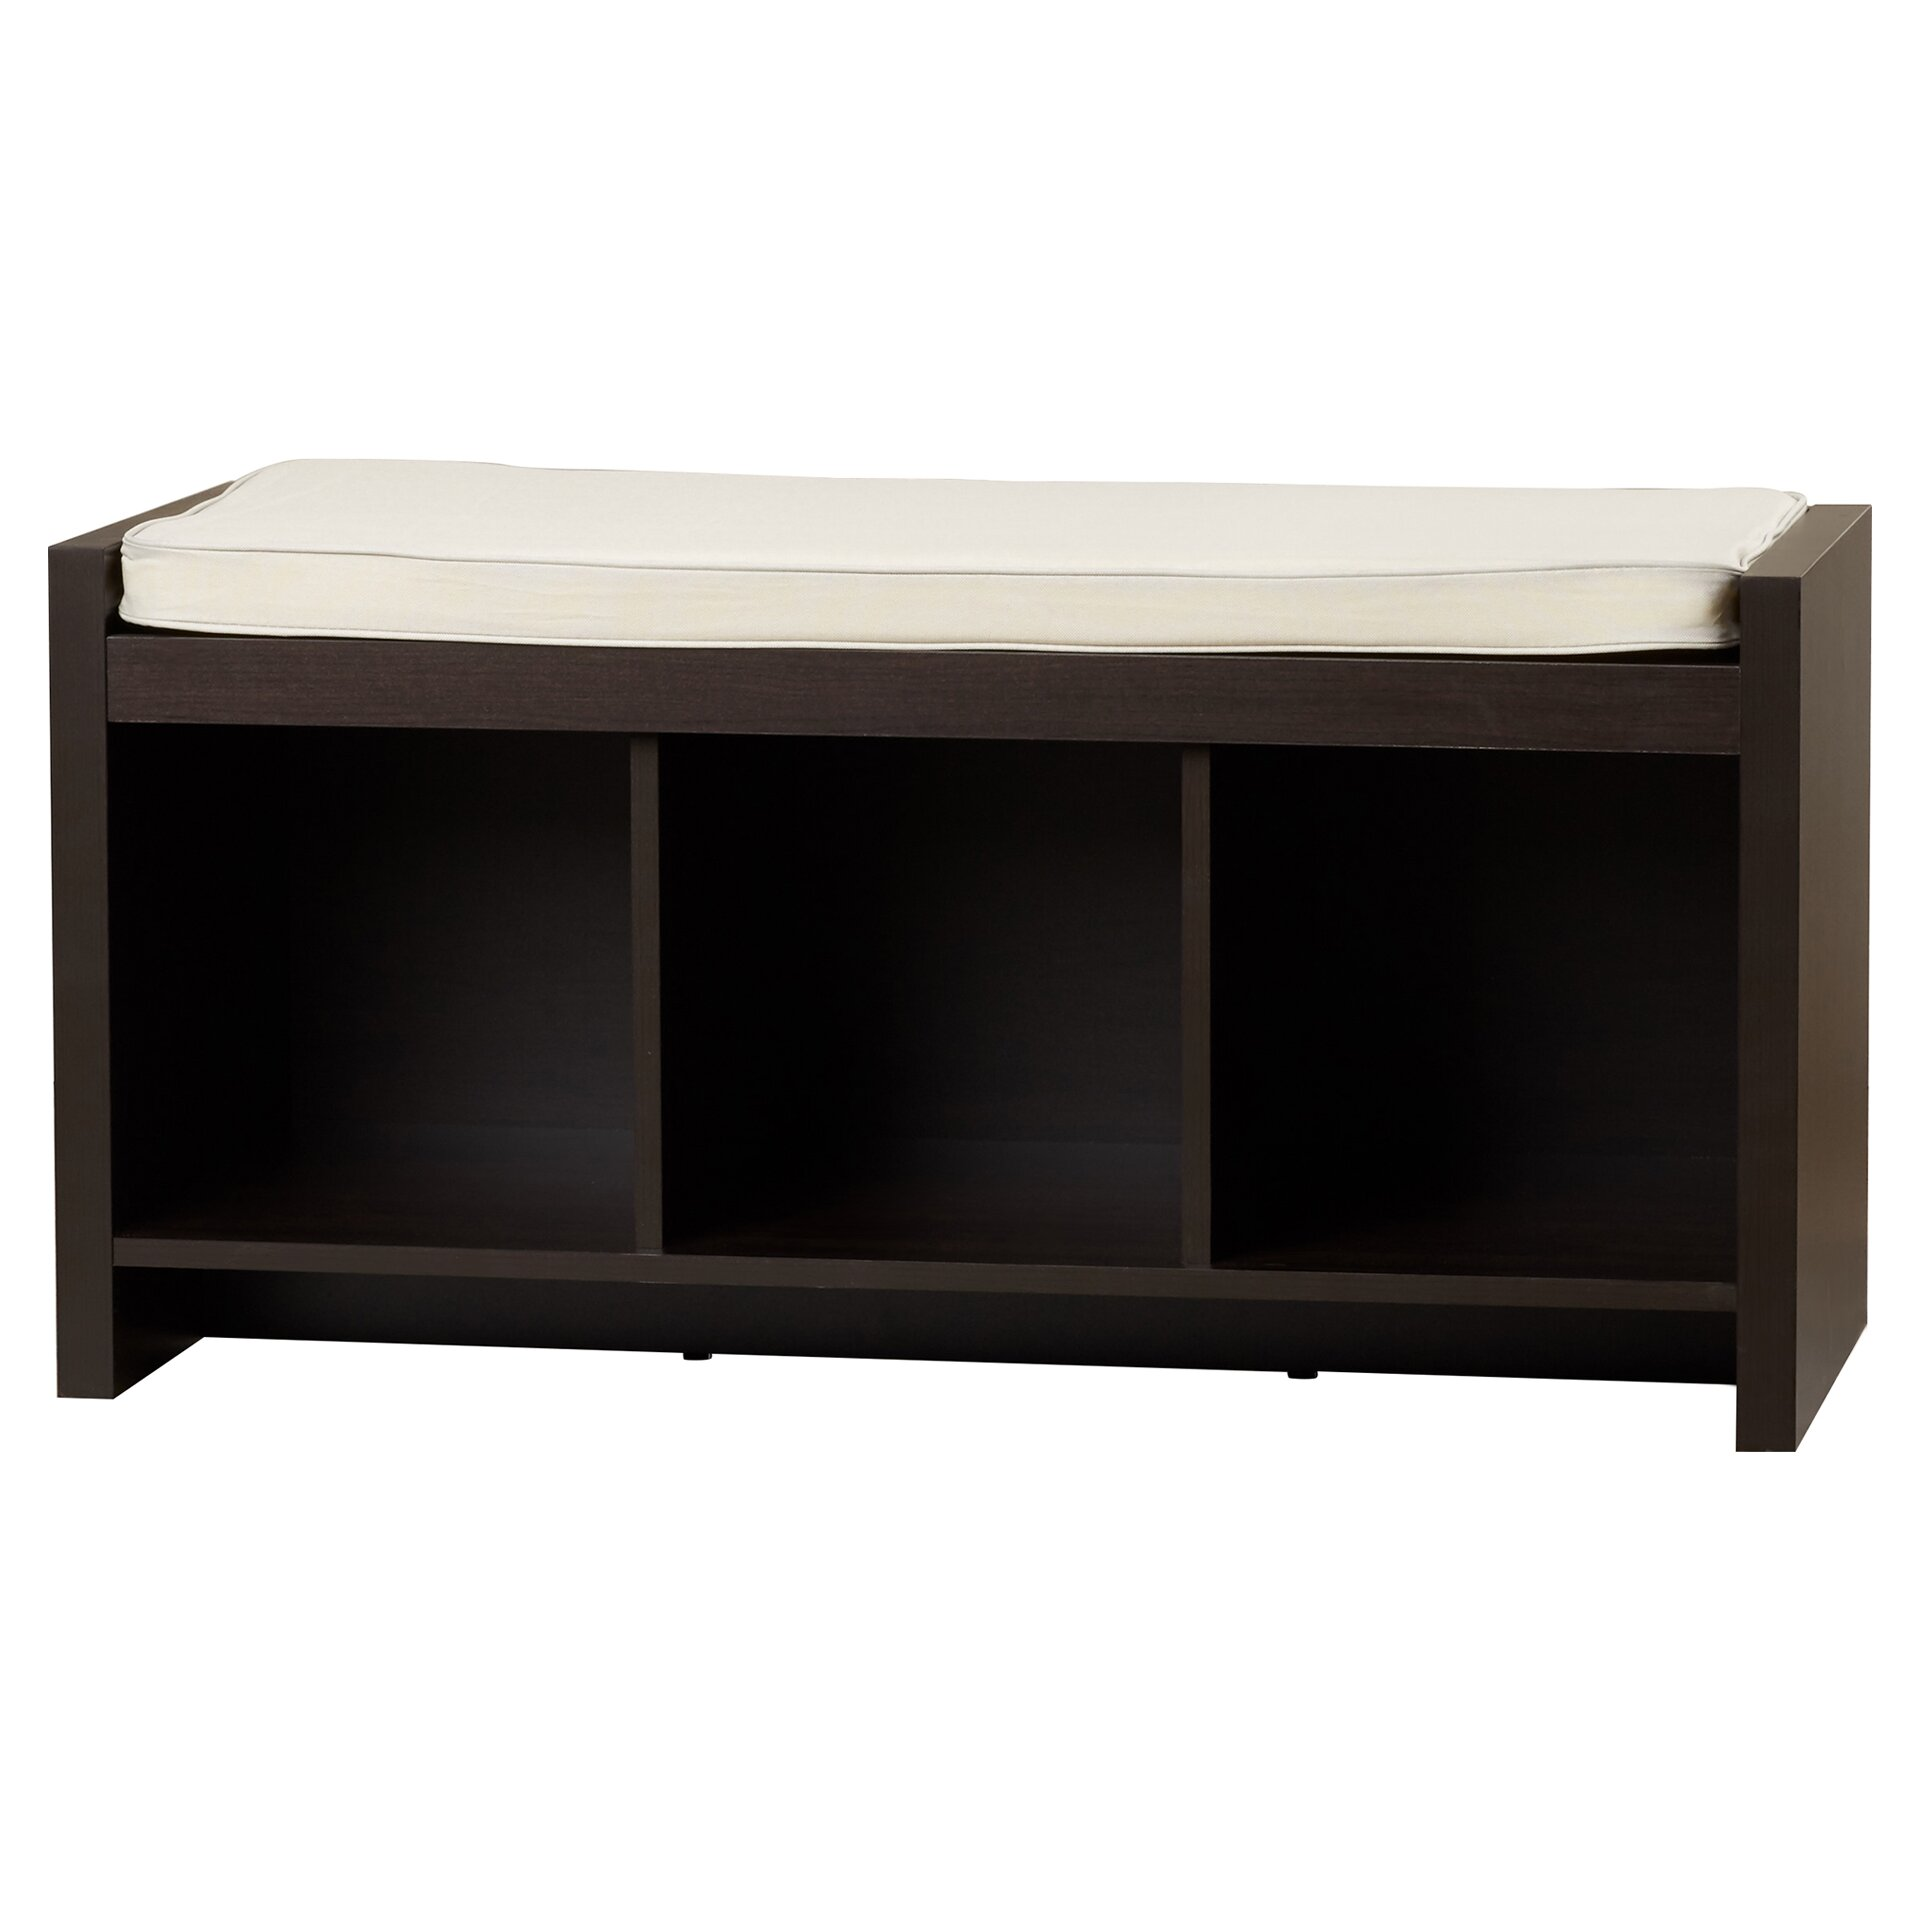 Bedroom benches with storage - Claudia Storage Bench With Cushion